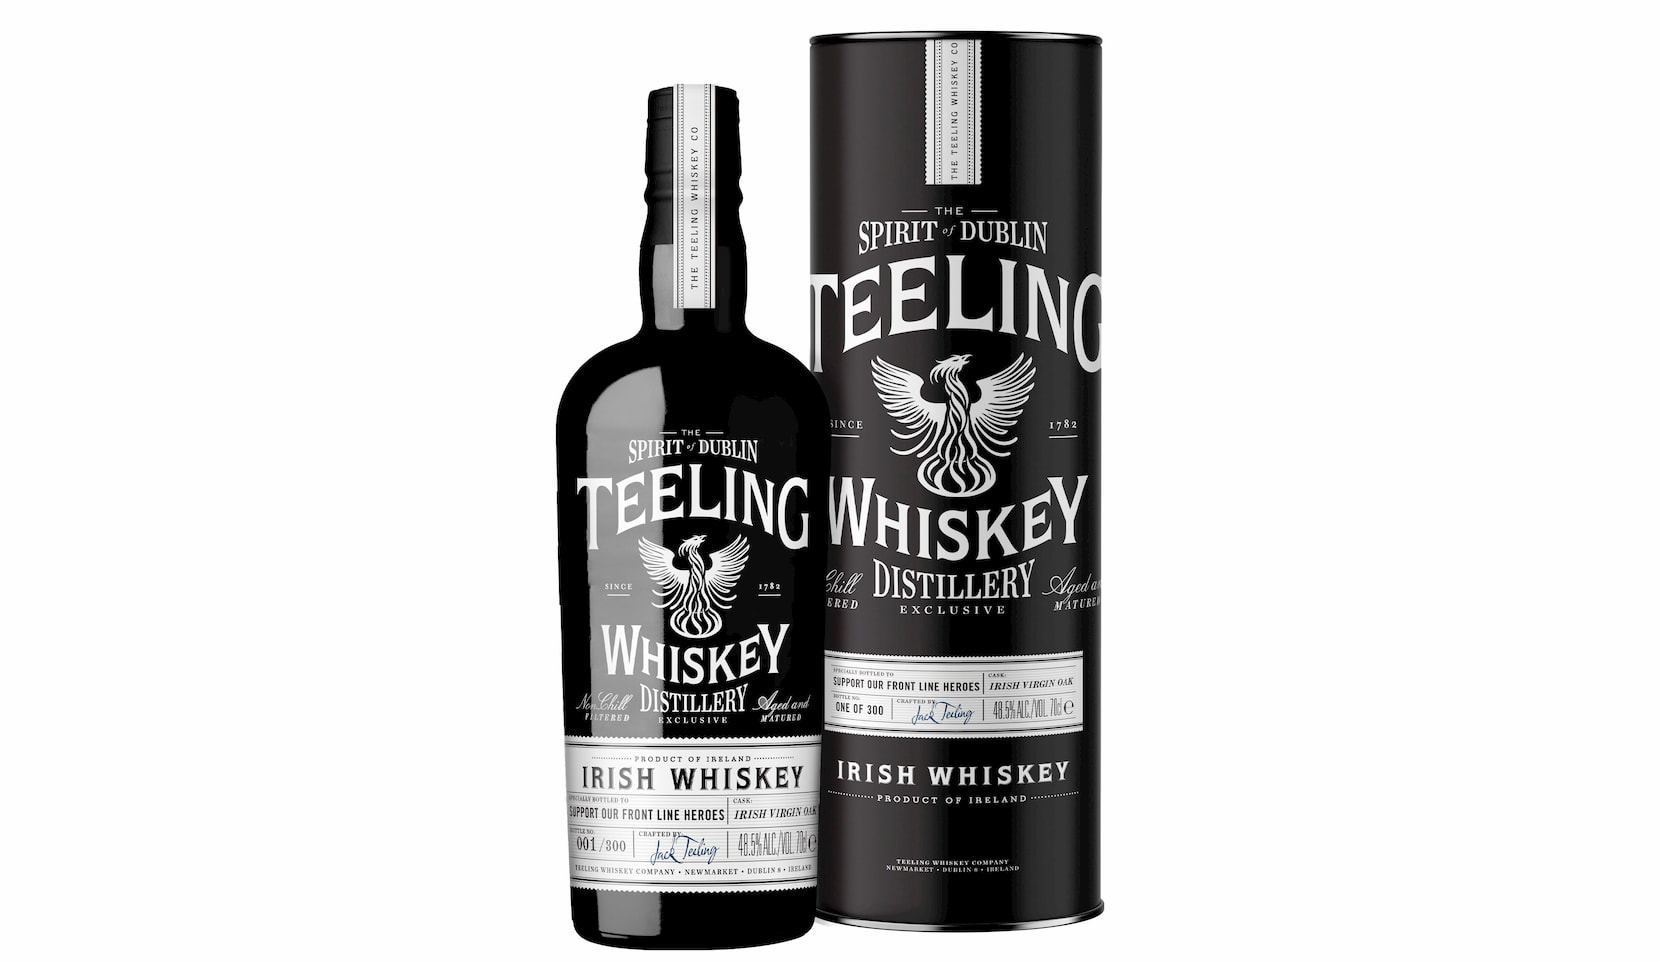 Teeling Whiskey Releases Special Charity Bottling in Support of Front Line Heroes